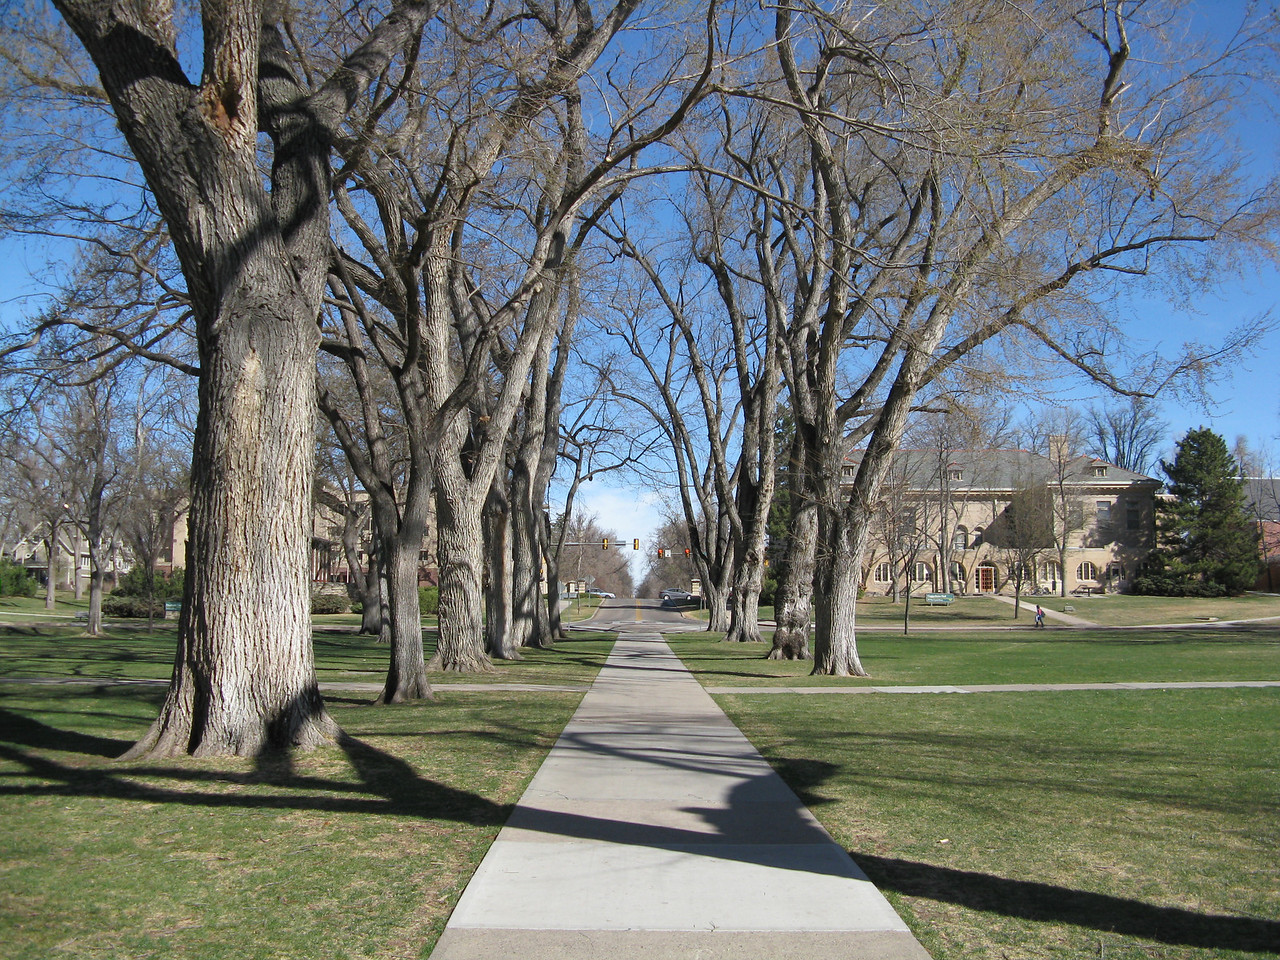 12-03-21 Ft Collins 018